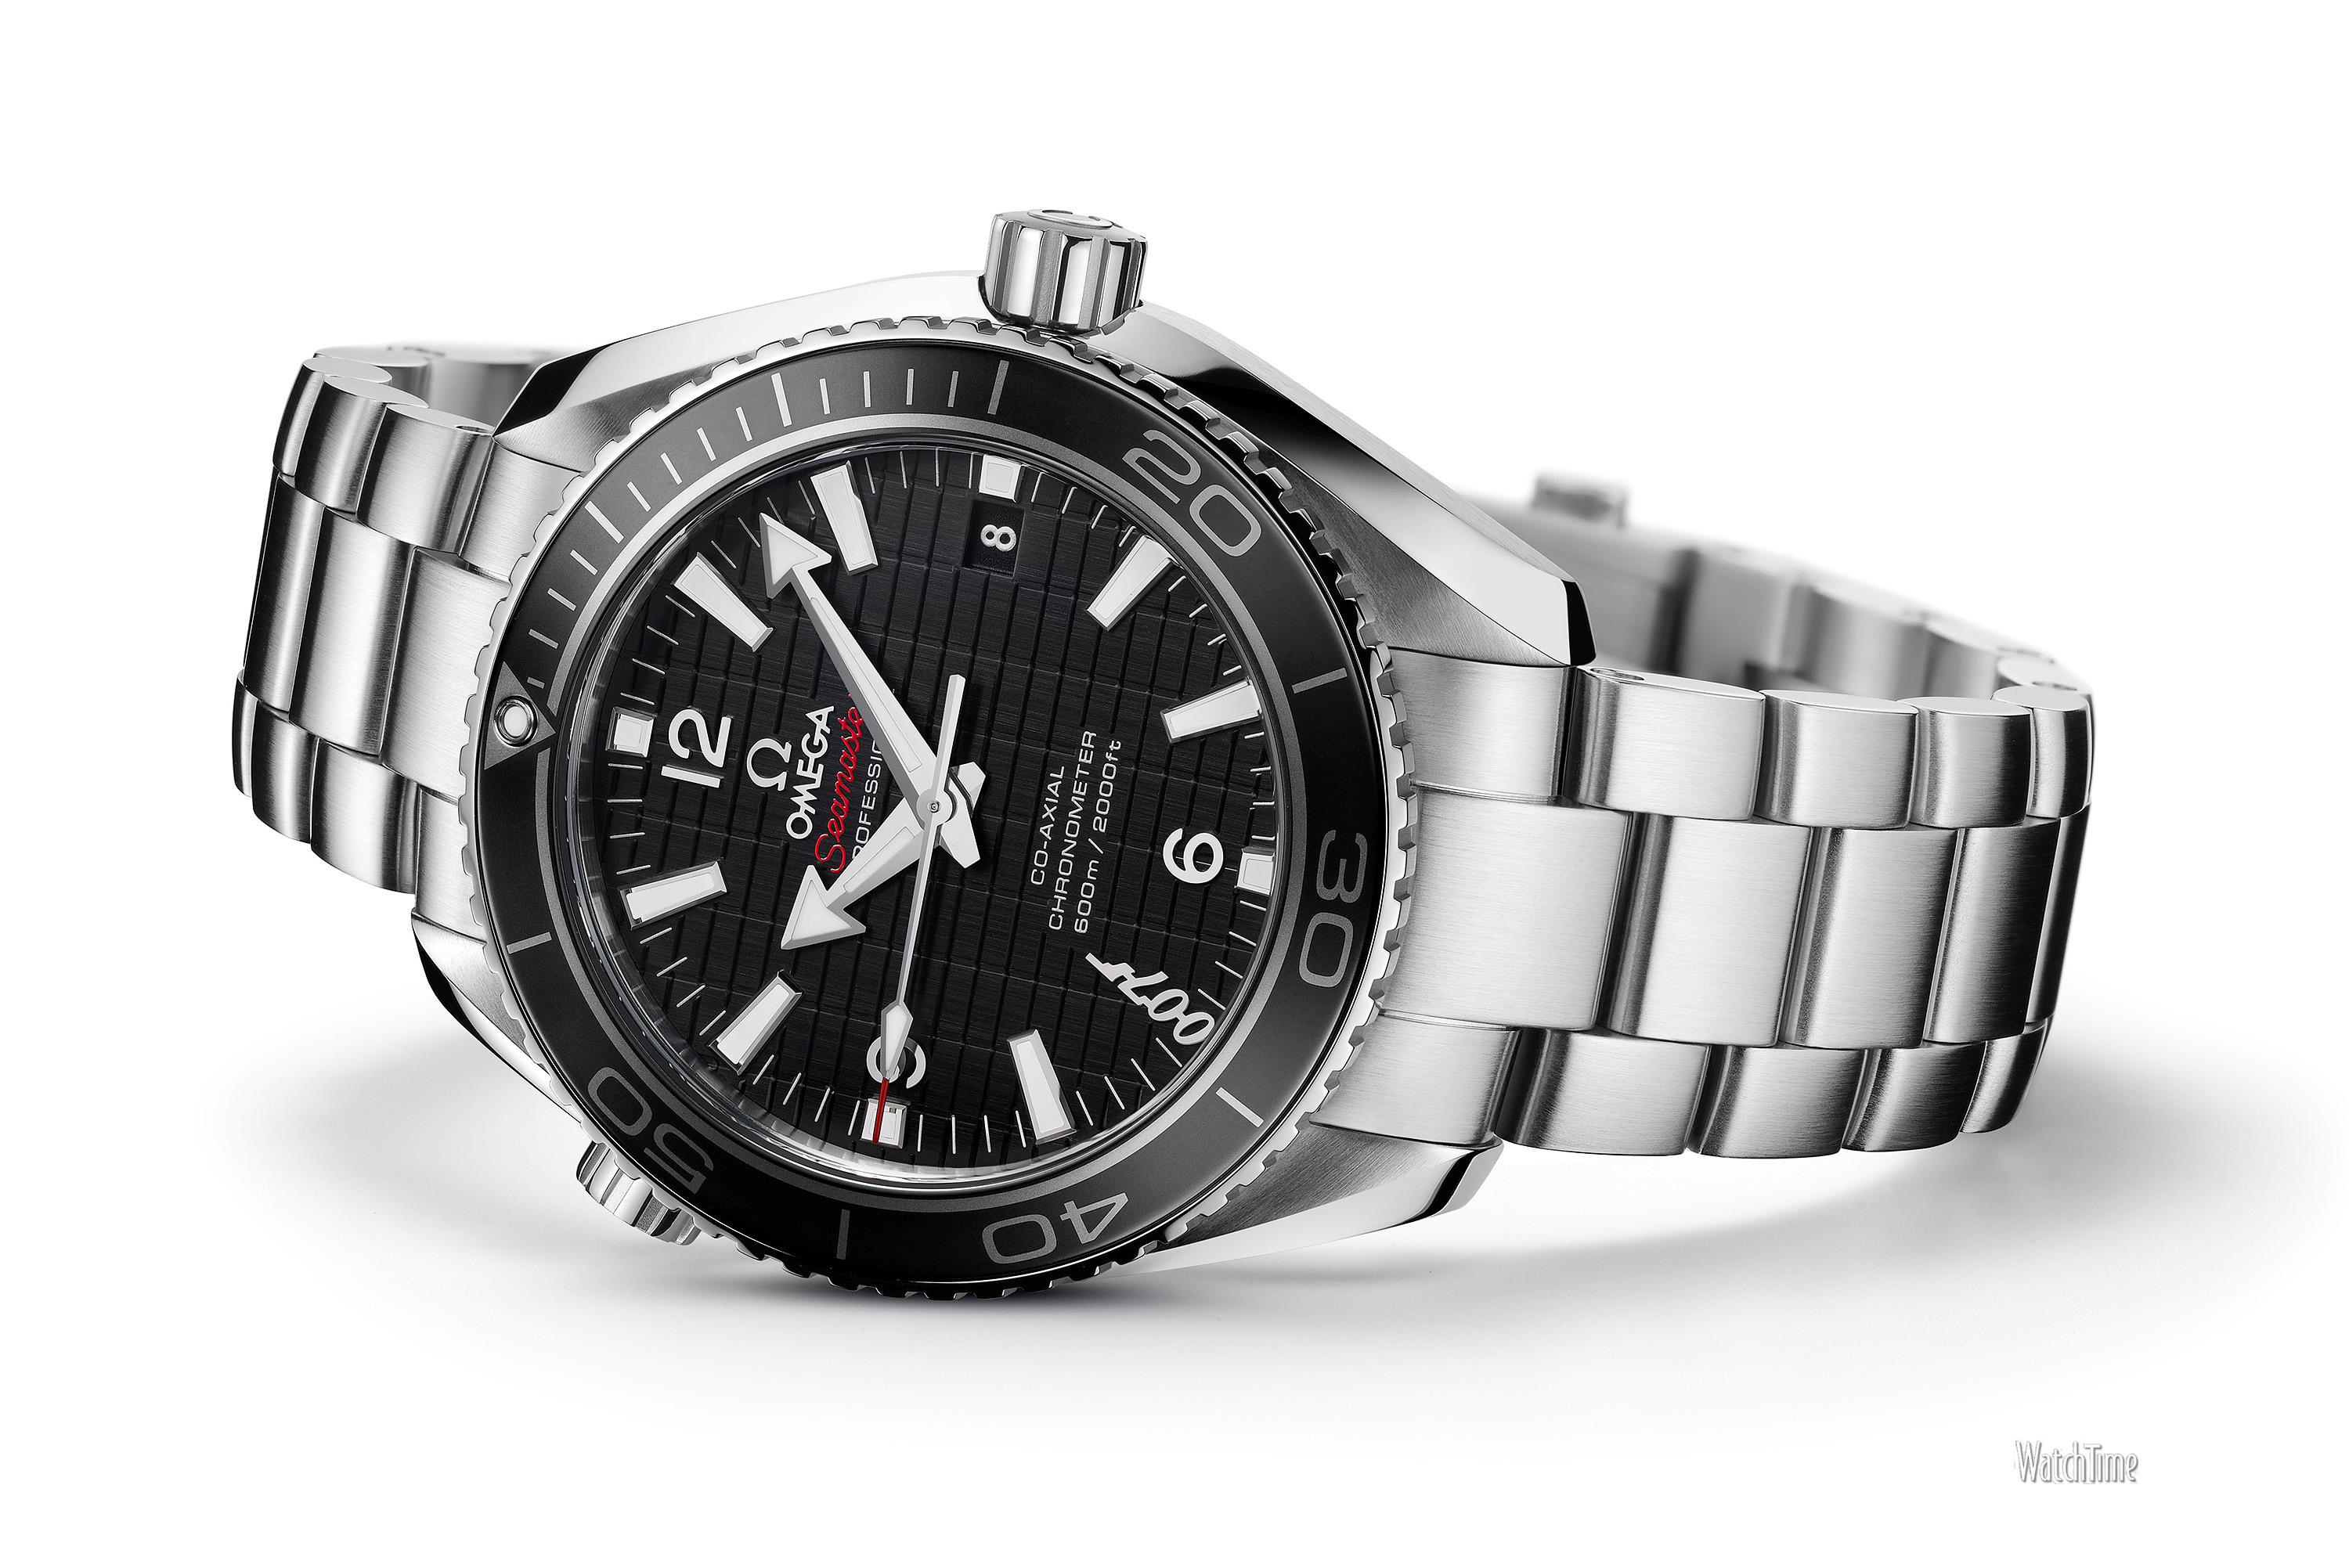 Watches Limited Edition James Bond Watch Pictures To Pin On Pinterest